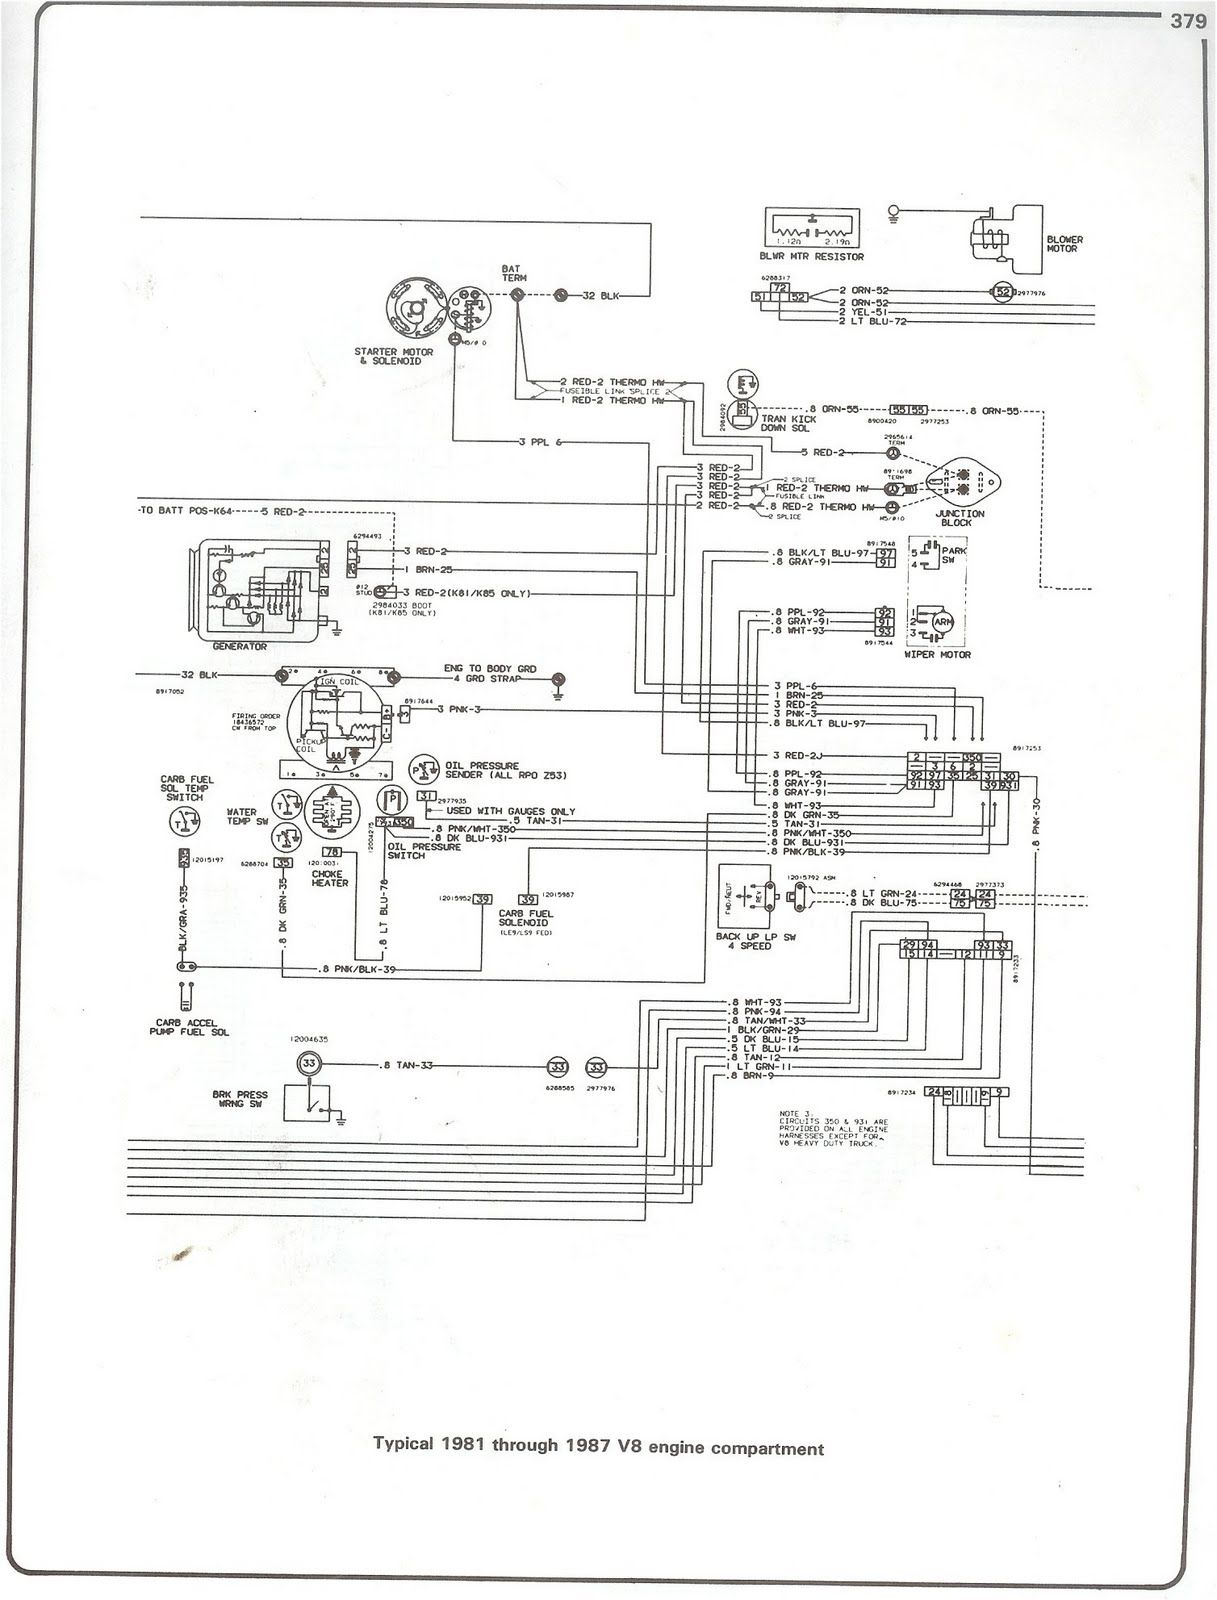 medium resolution of 1985 k 5 chevy blazer wiring diagram